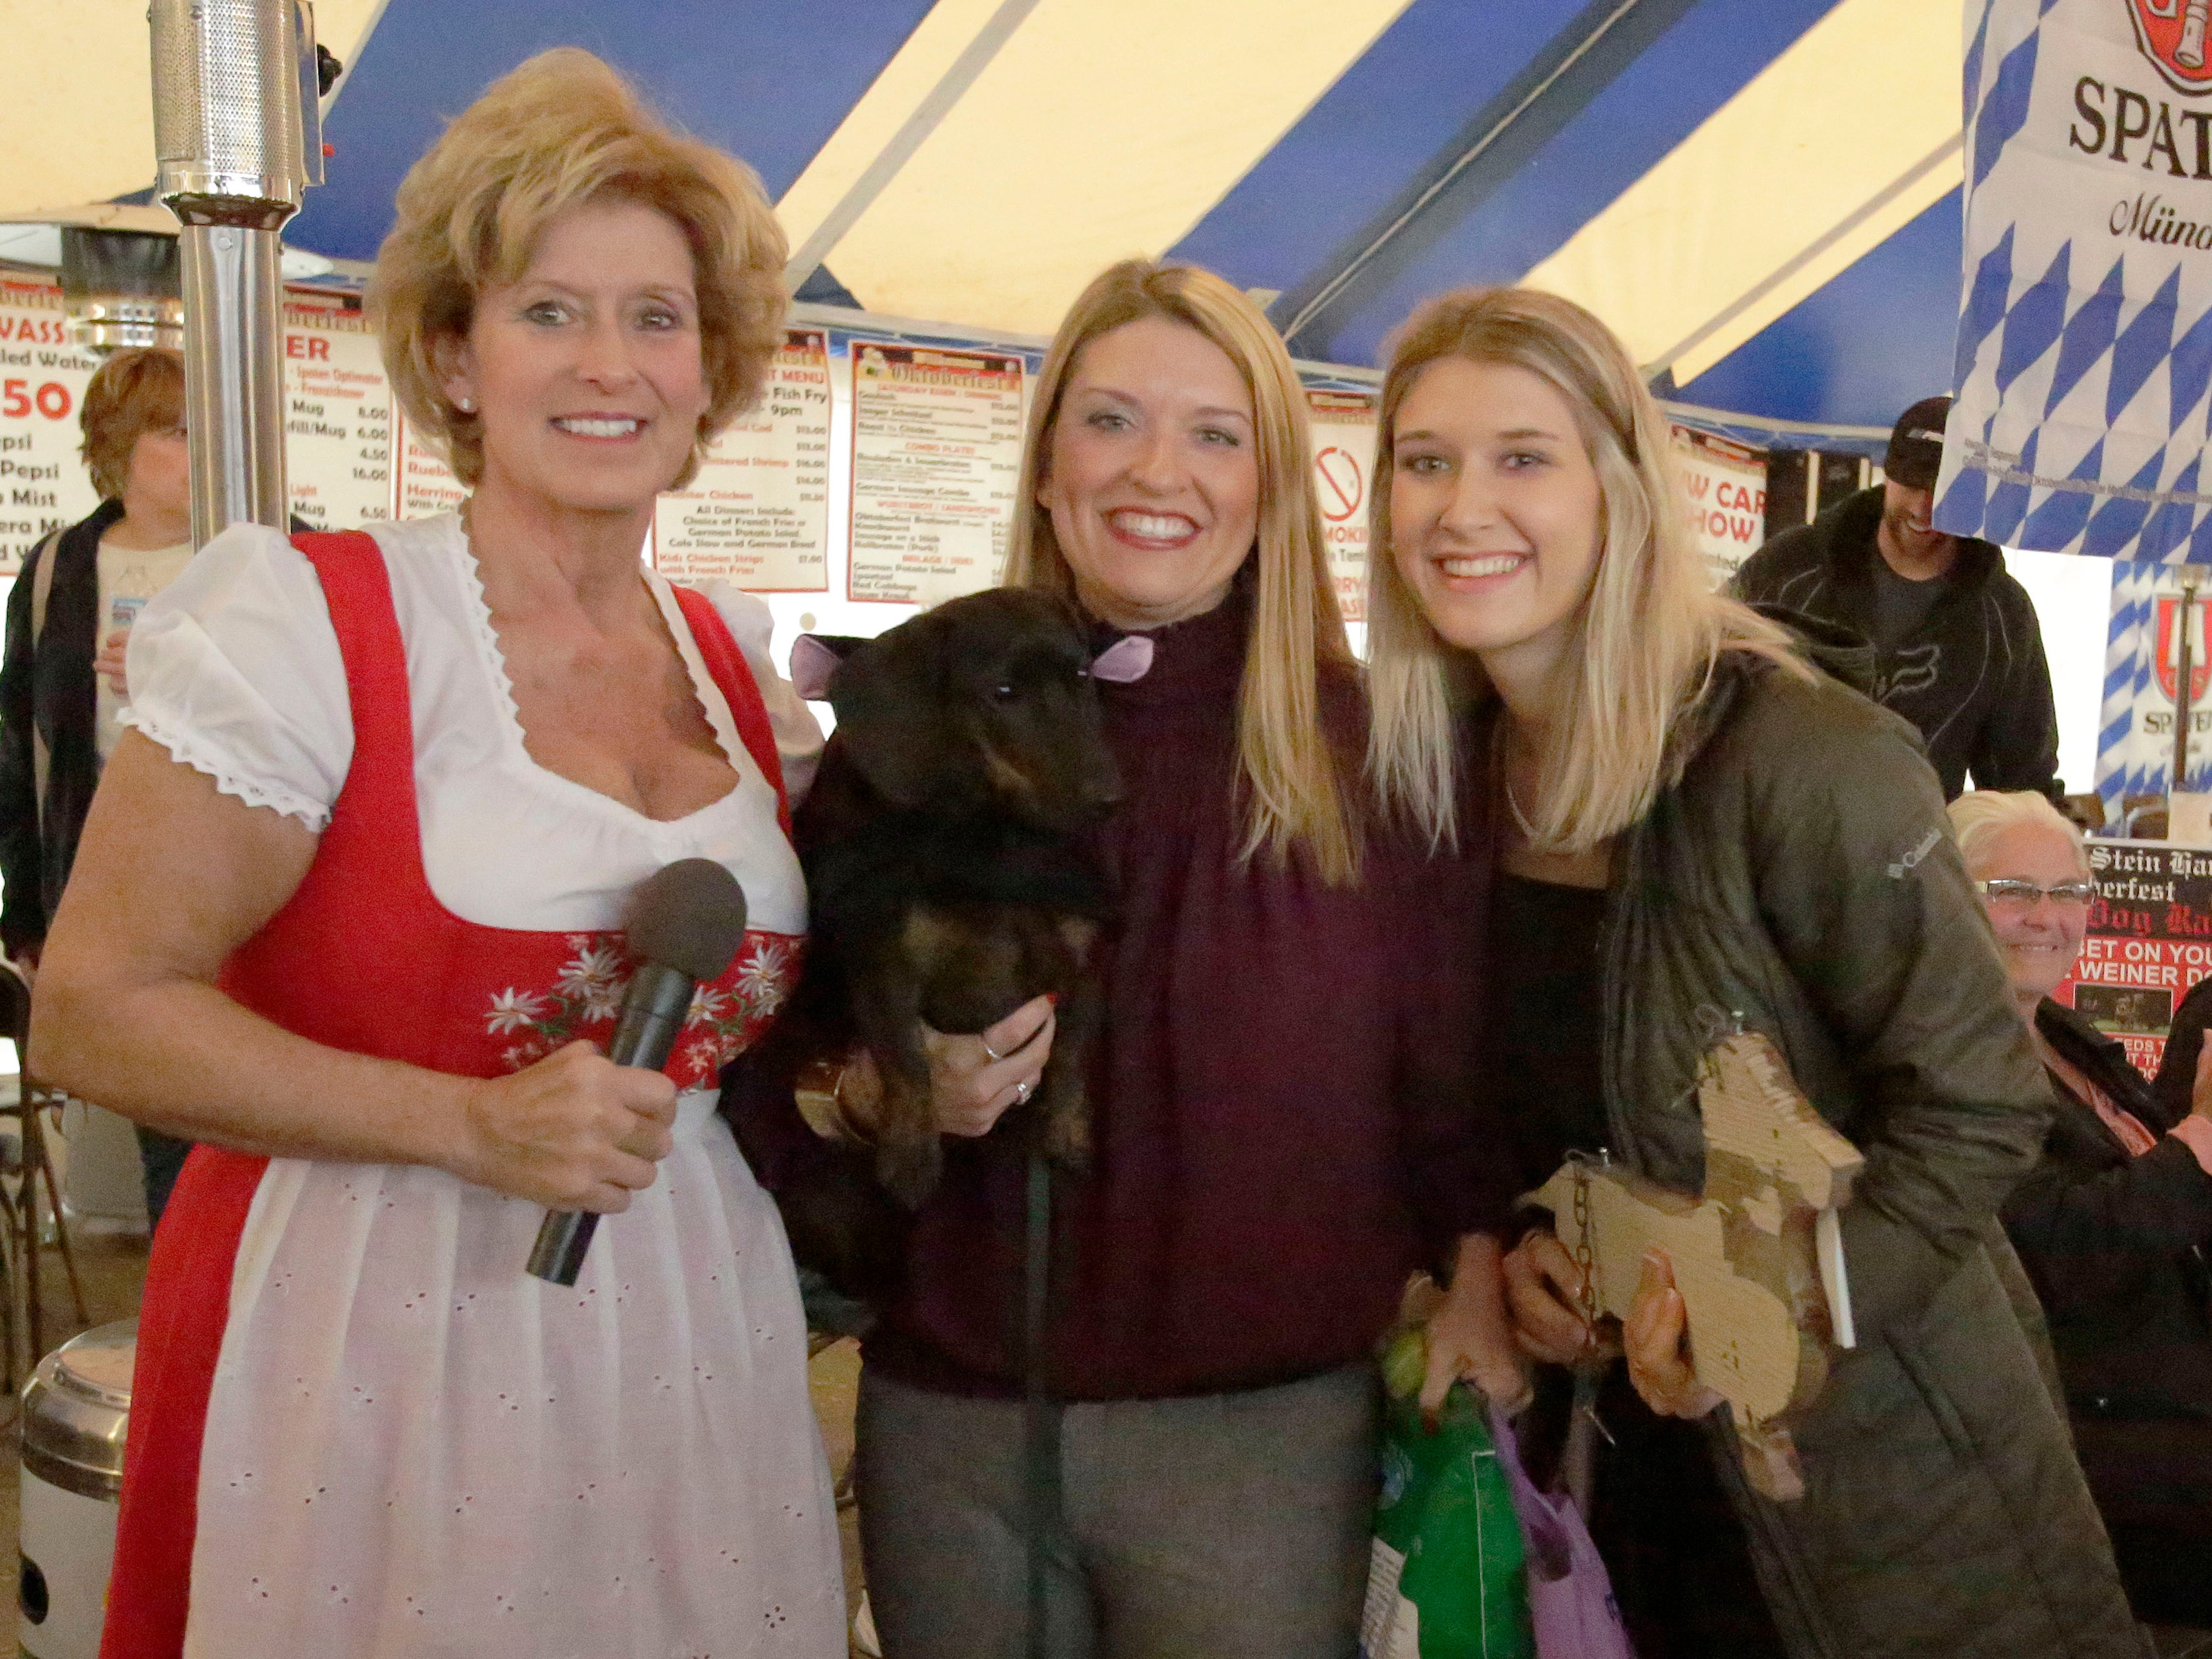 Al and Al's Susie Patterson, left, poses with Weiner Dog race winners Laura and Sydnee Pribbernow of Sheboygan, Saturday October 6, 2018, in Sheboygan, Wis. According to Laura Pribbernow her secret was a piece of sausage she had waiting for the dog at the finish line.